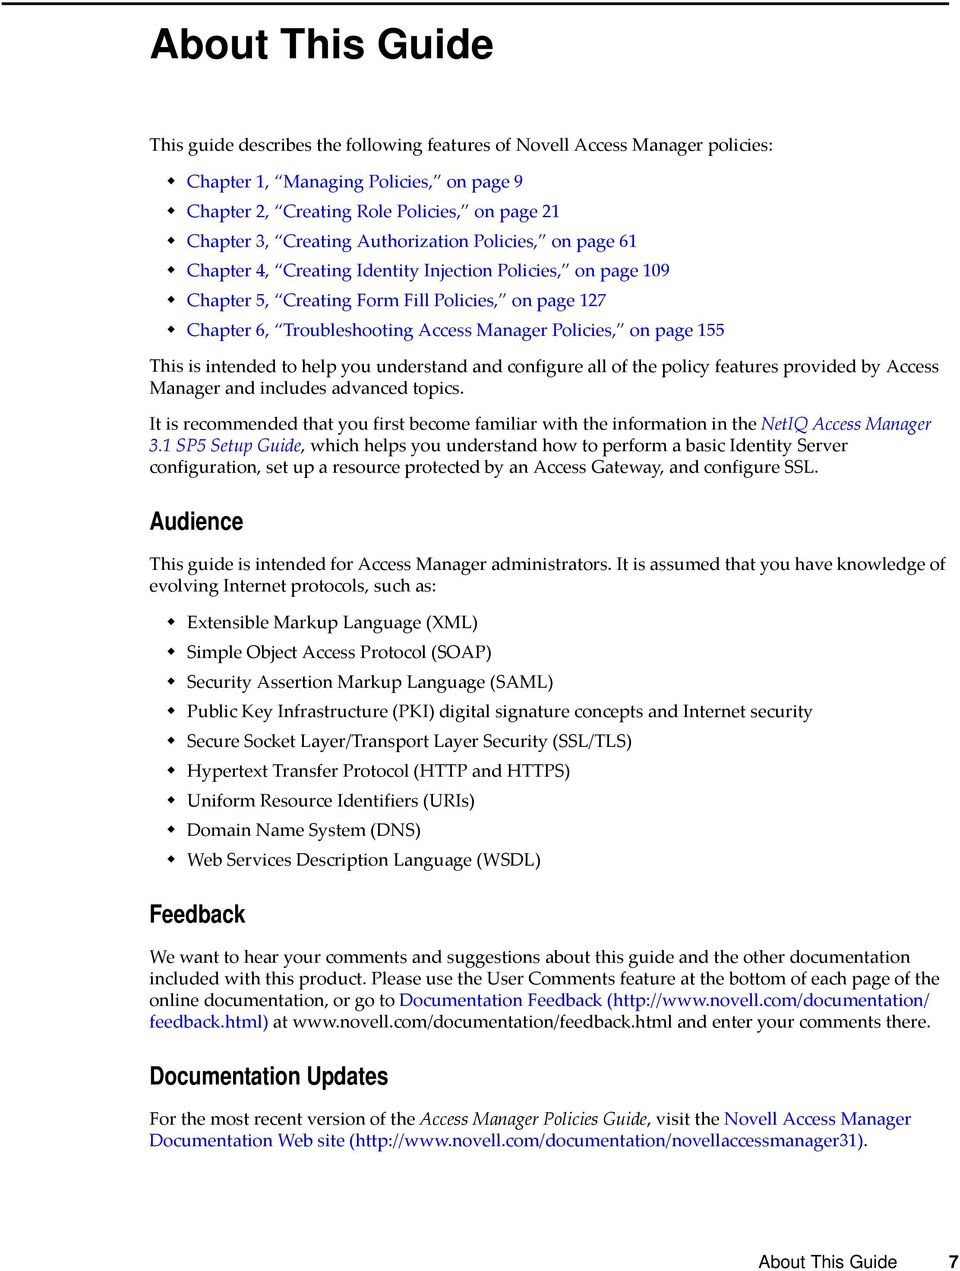 Policies, on page 155 This is intended to help you understand and configure all of the policy features provided by Access Manager and includes advanced topics.